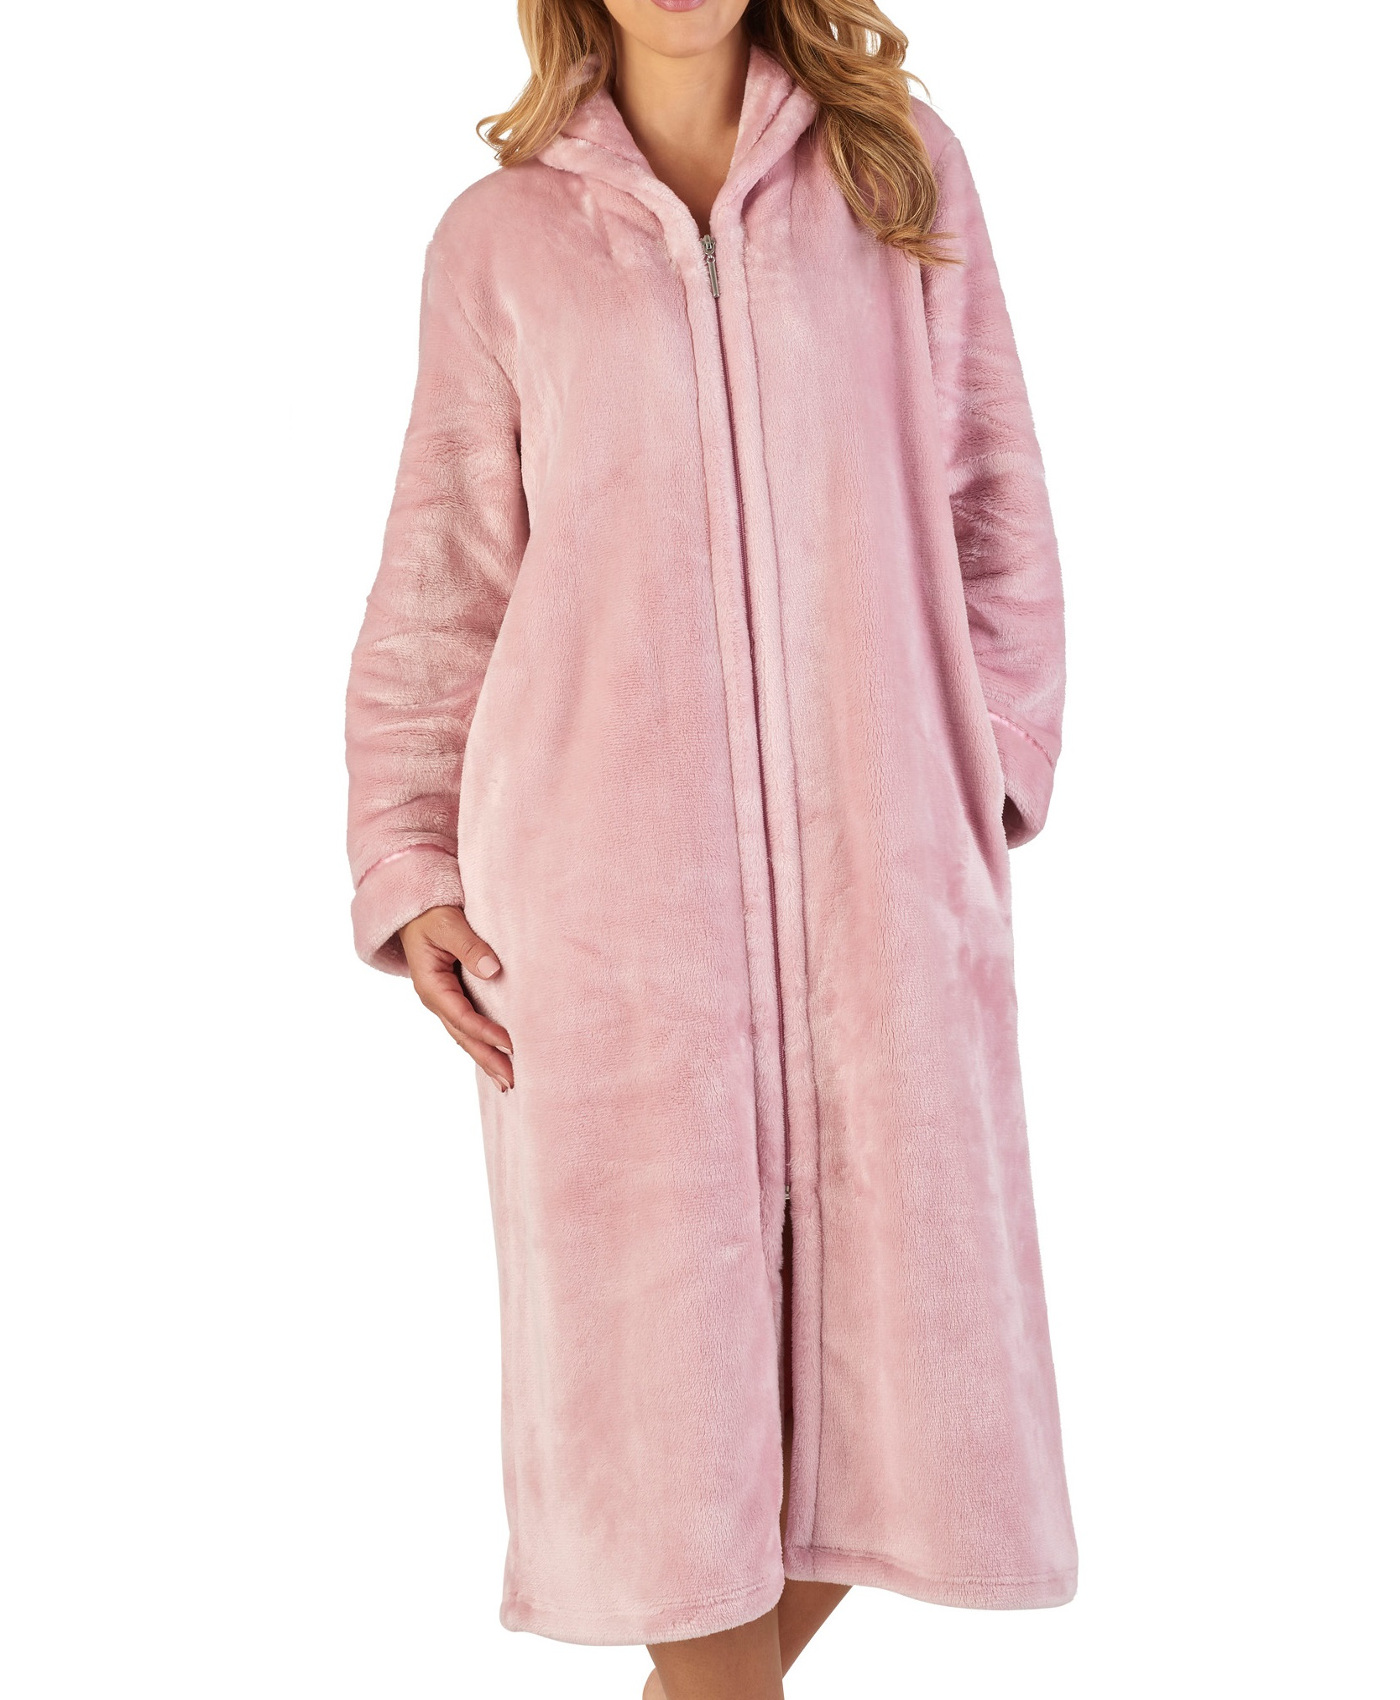 Slenderella Womens Luxury Thick Flannel Fleece Dressing Gown Zip Up ... 63bd03705